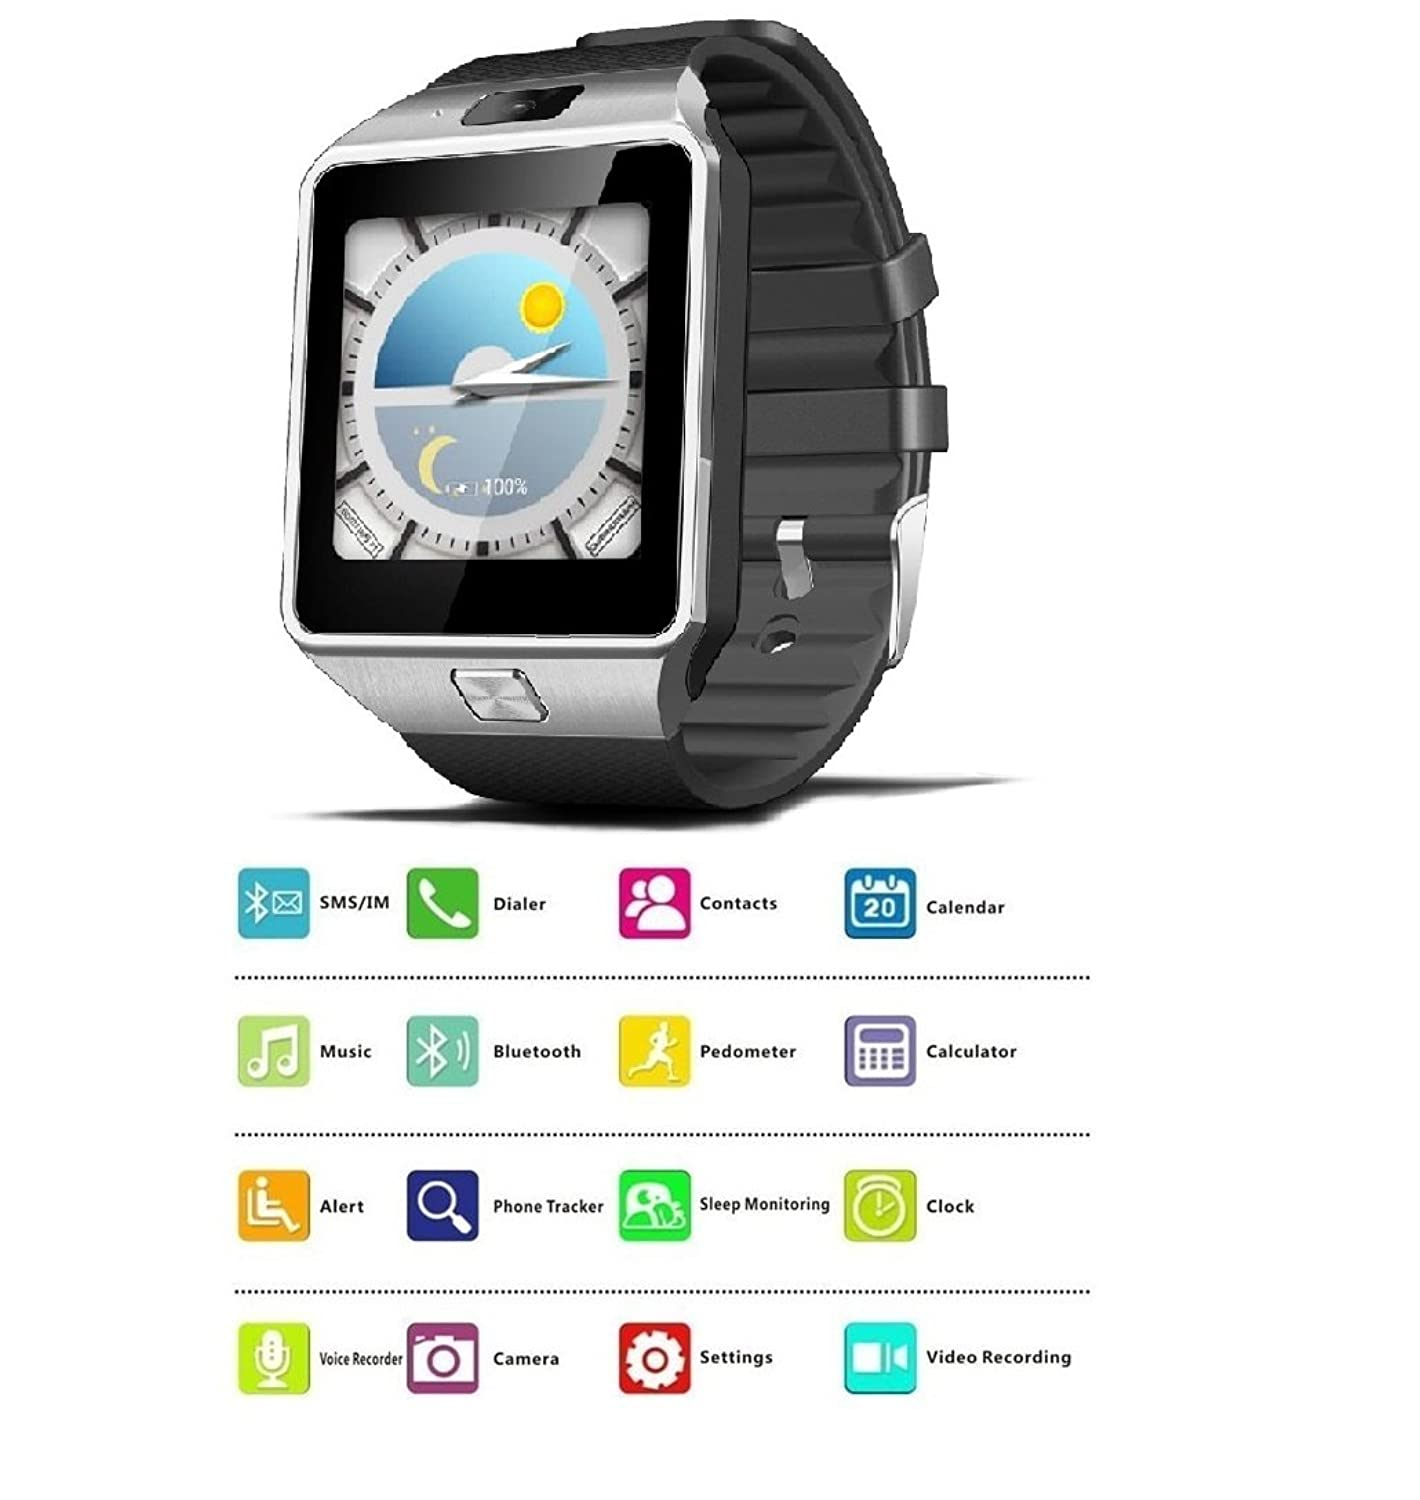 Amazon.com: Reloj Inteligente DEPORTIVO CON CAMARA PARA IPHONE Y ANDROID DIGITAL DE MUJER Y HOMBRE UNISEX RE0107 (SILVER/BLACK): Watches